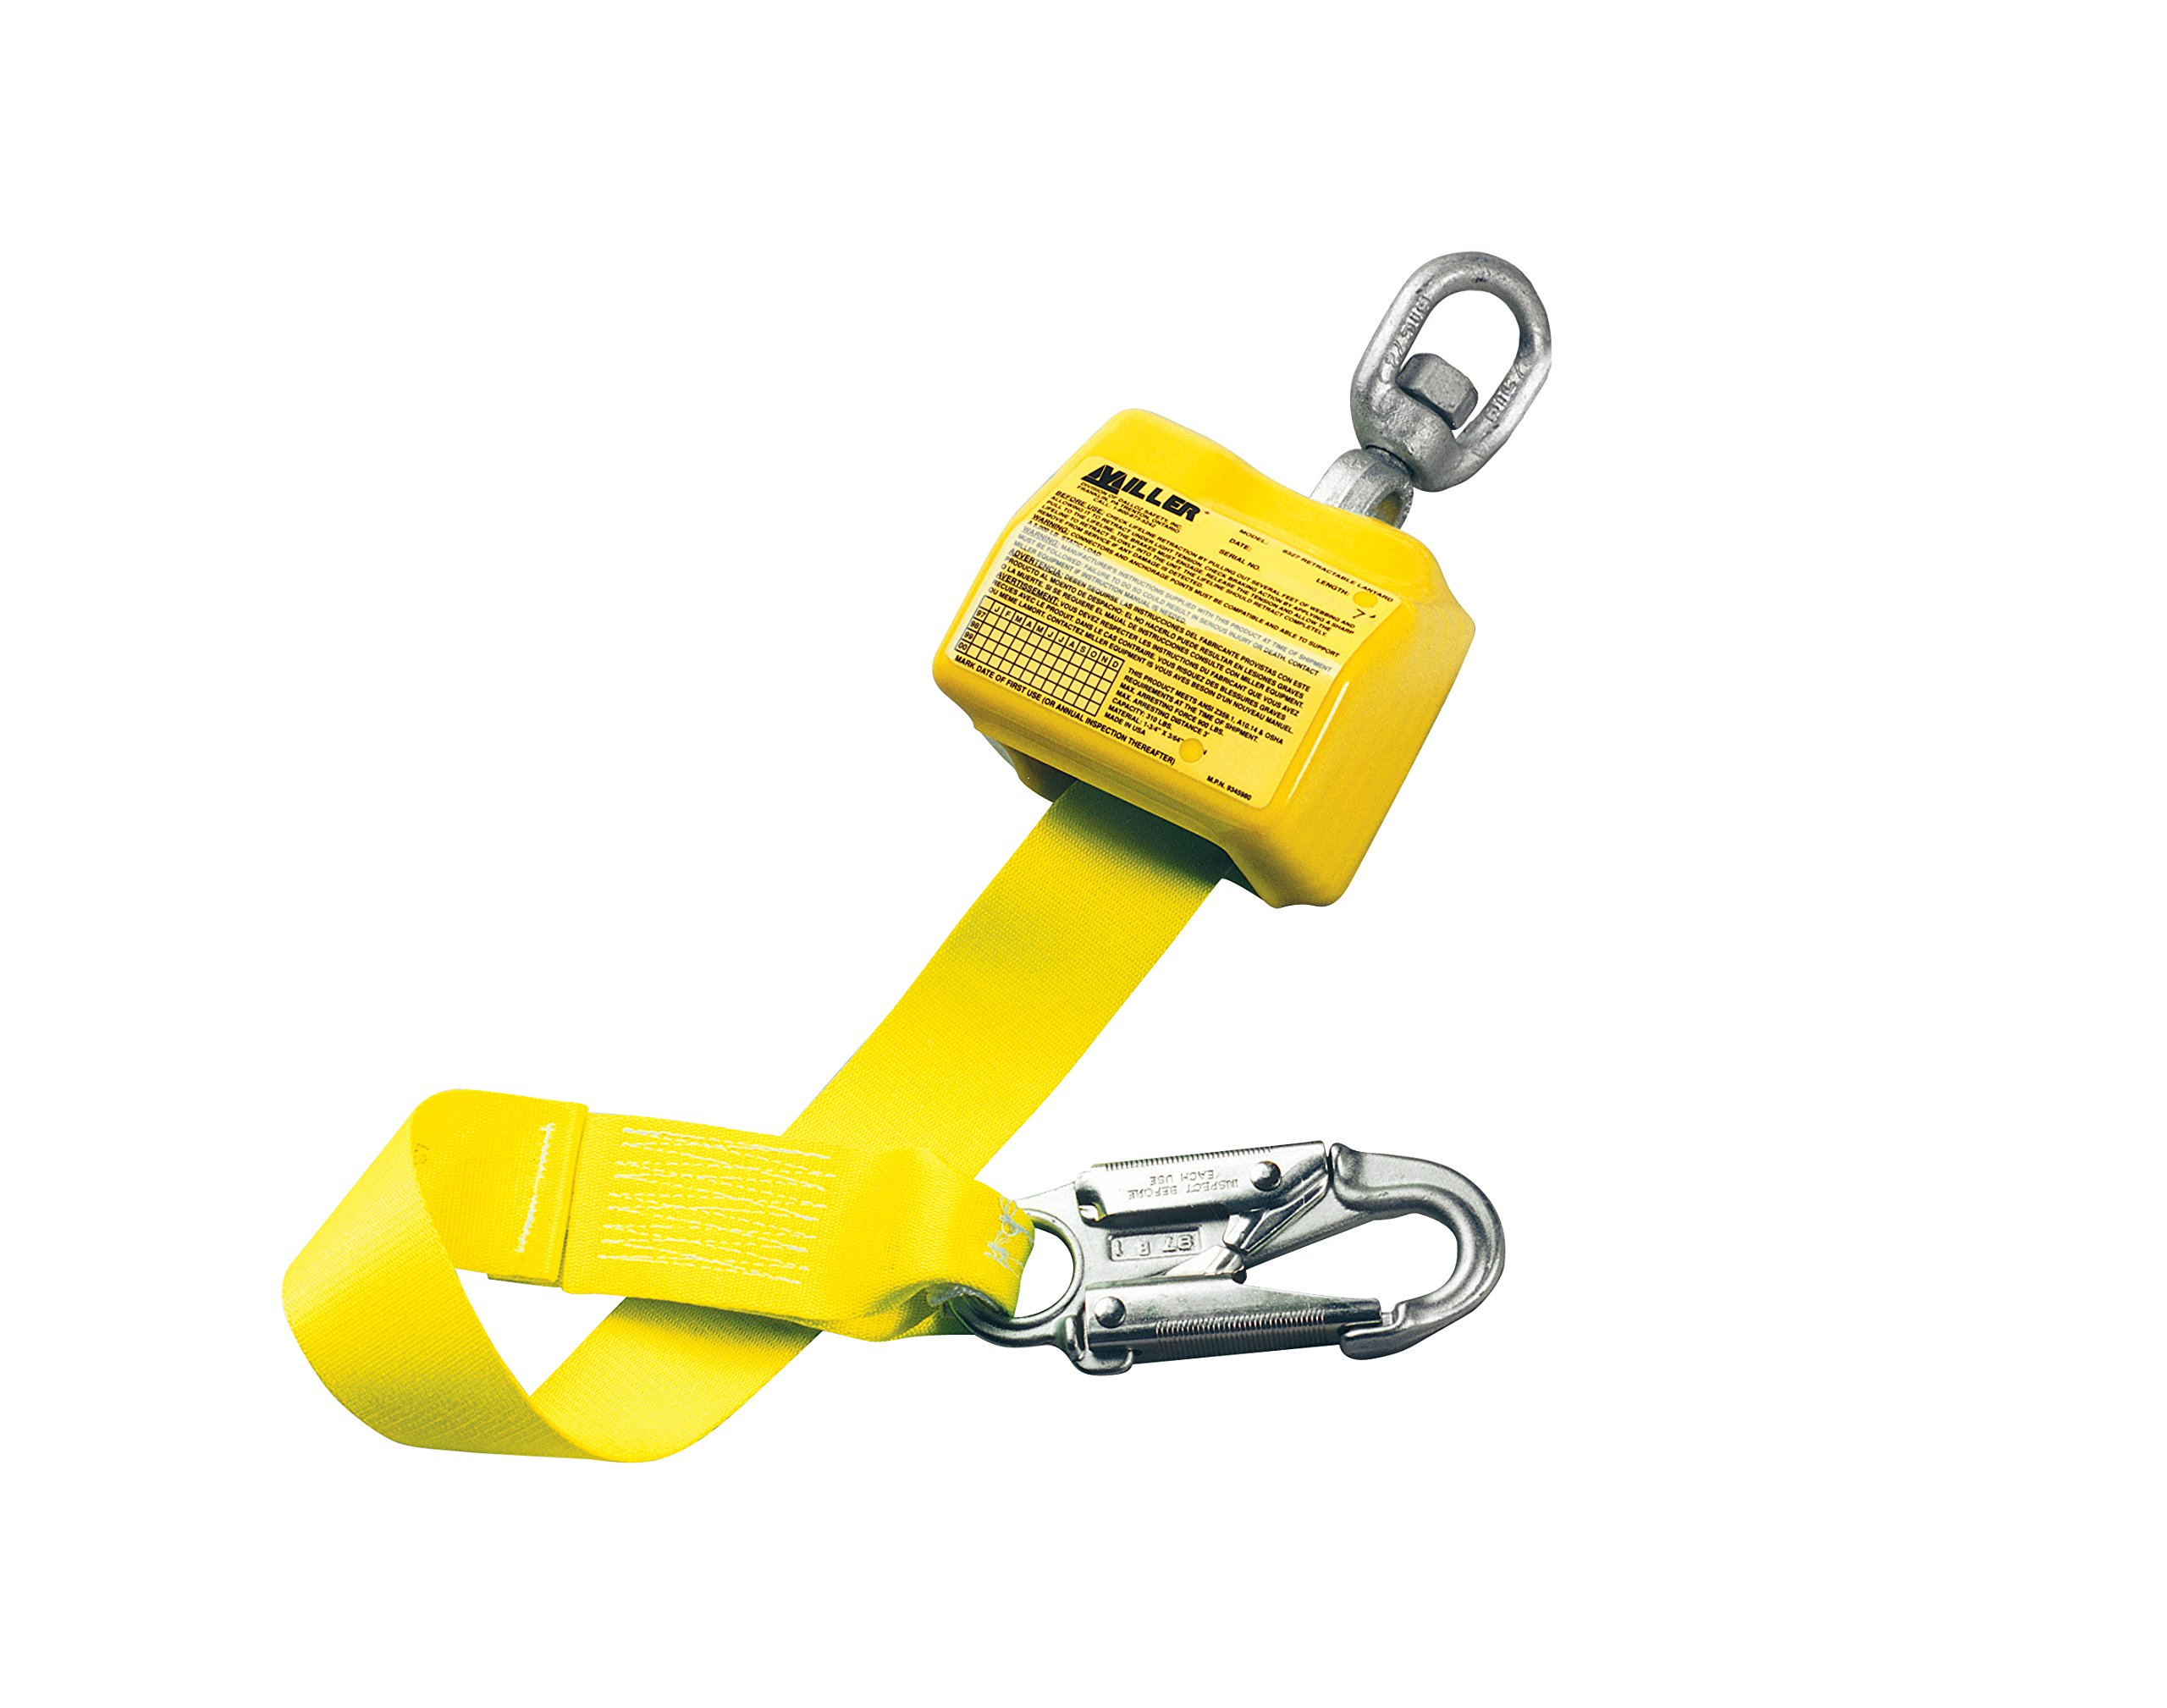 Miller by Honeywell 8327/10FTYL Retractable Lanyard with Carabiner, 10', Yellow